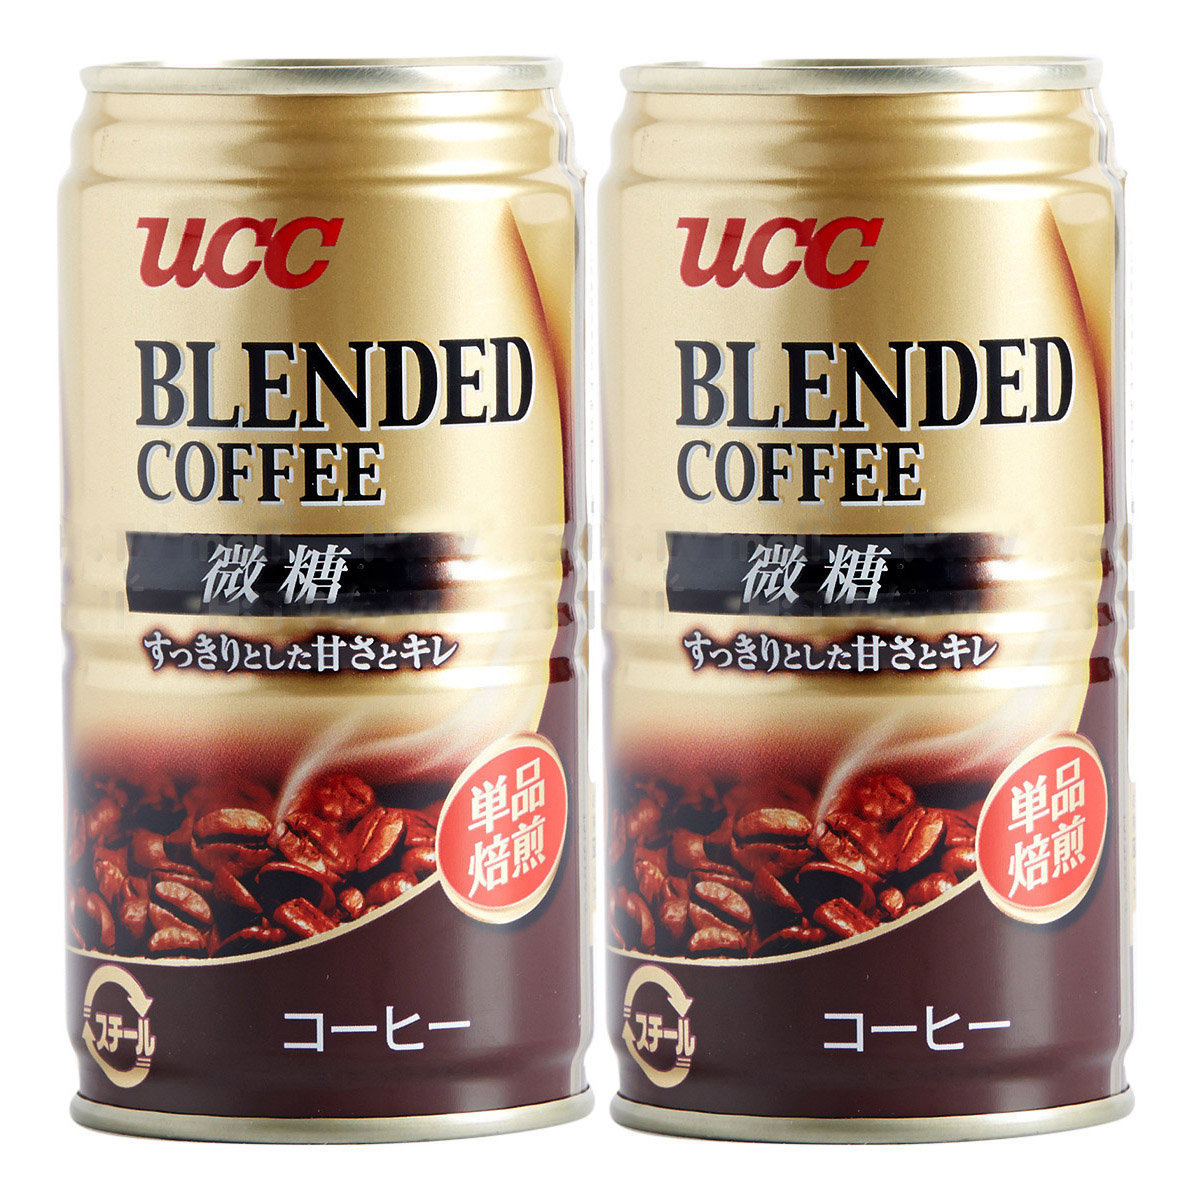 Blend Coffee Slightly Sweet (Can)